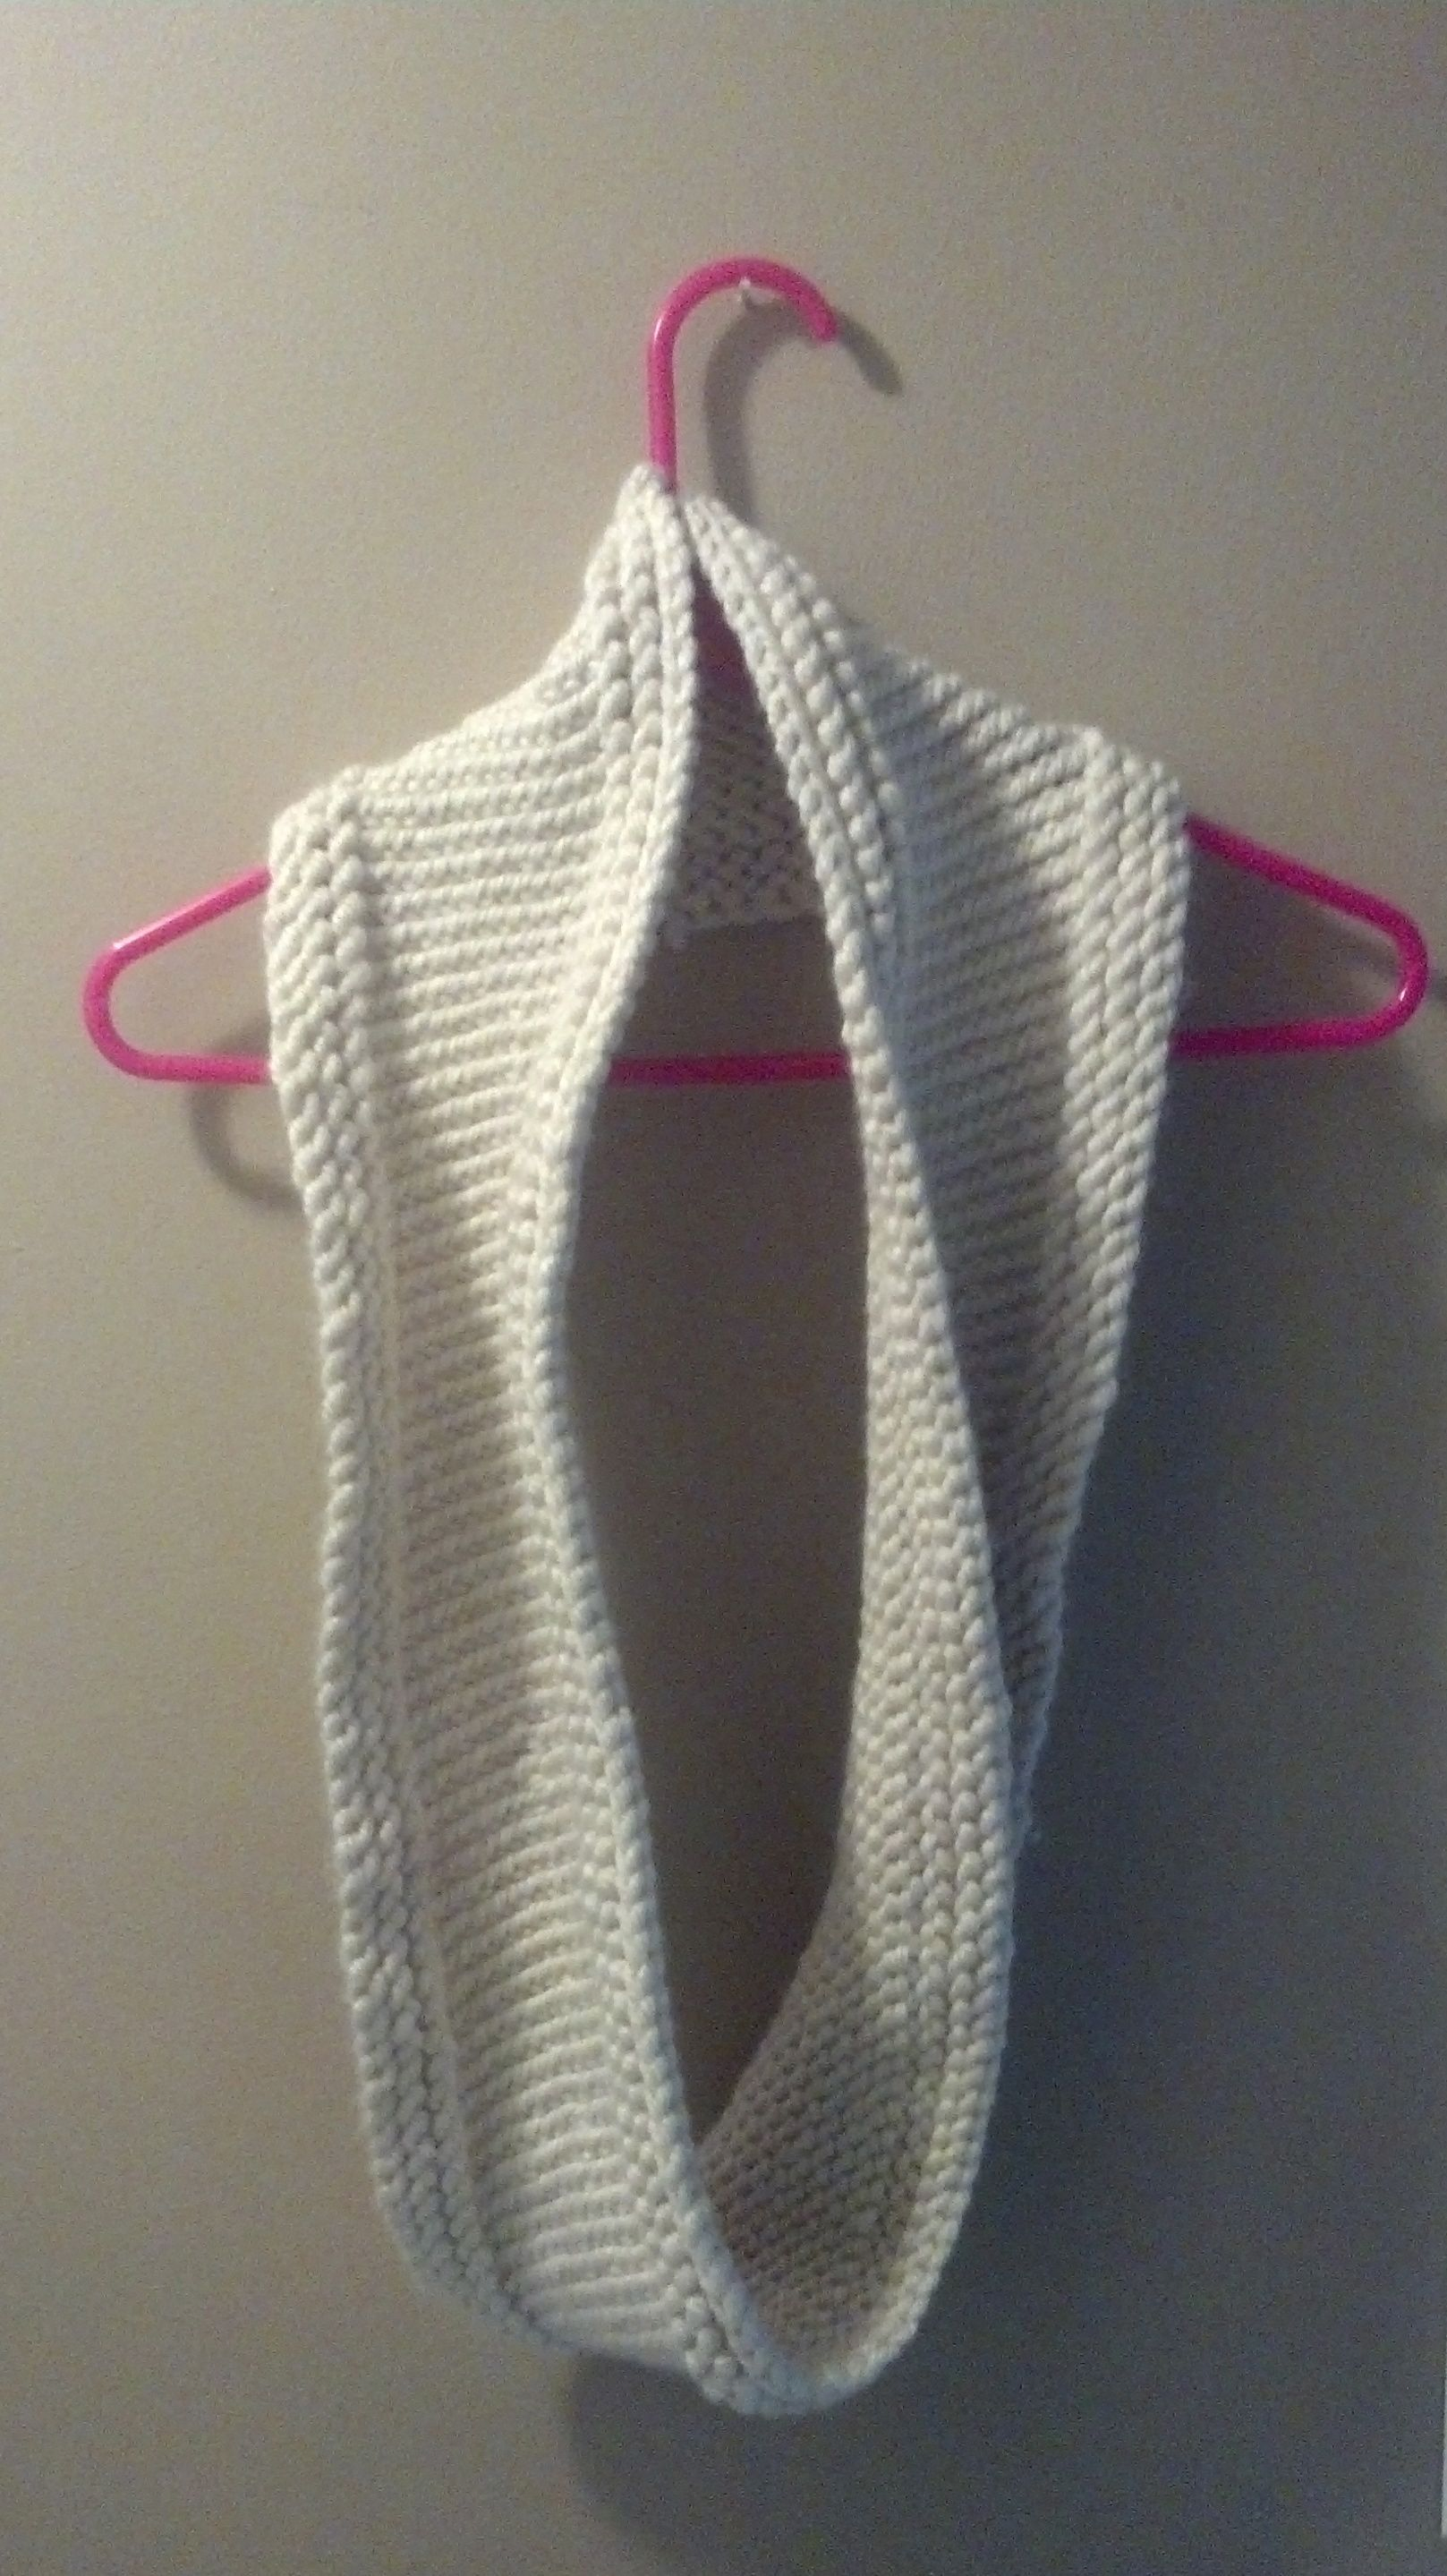 Circle scarf made with Bulky yarn on size 13 circular knitting ...